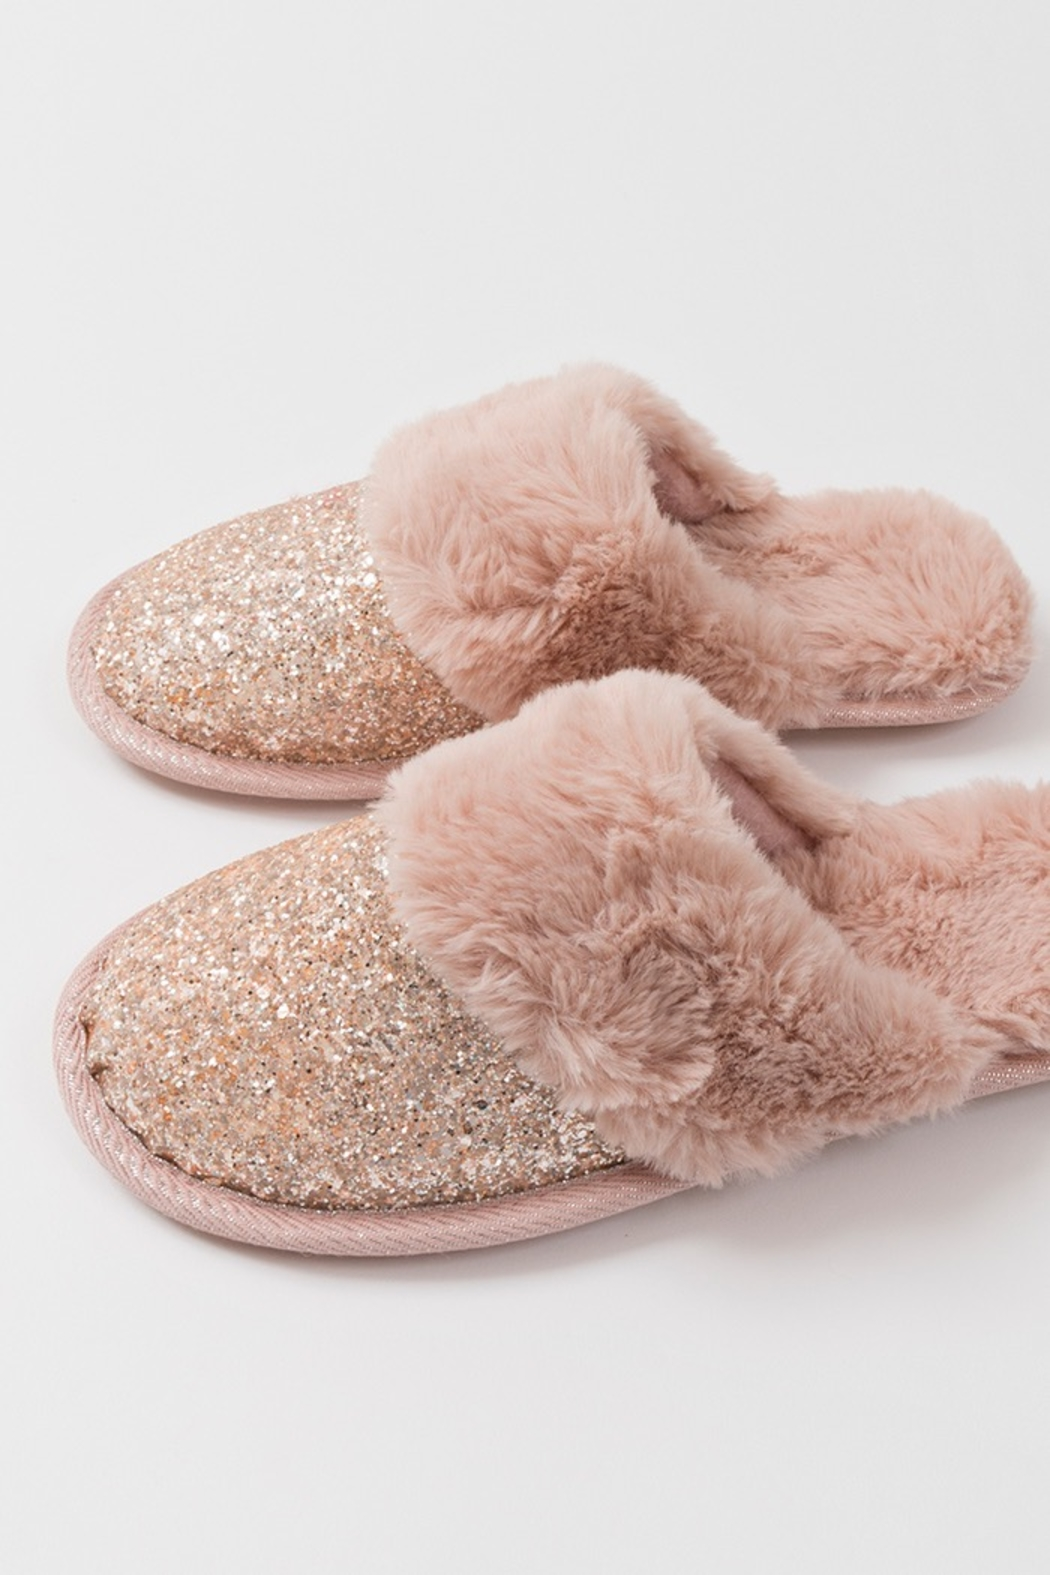 Pia Rossini Christa Slippers - Front Full Image